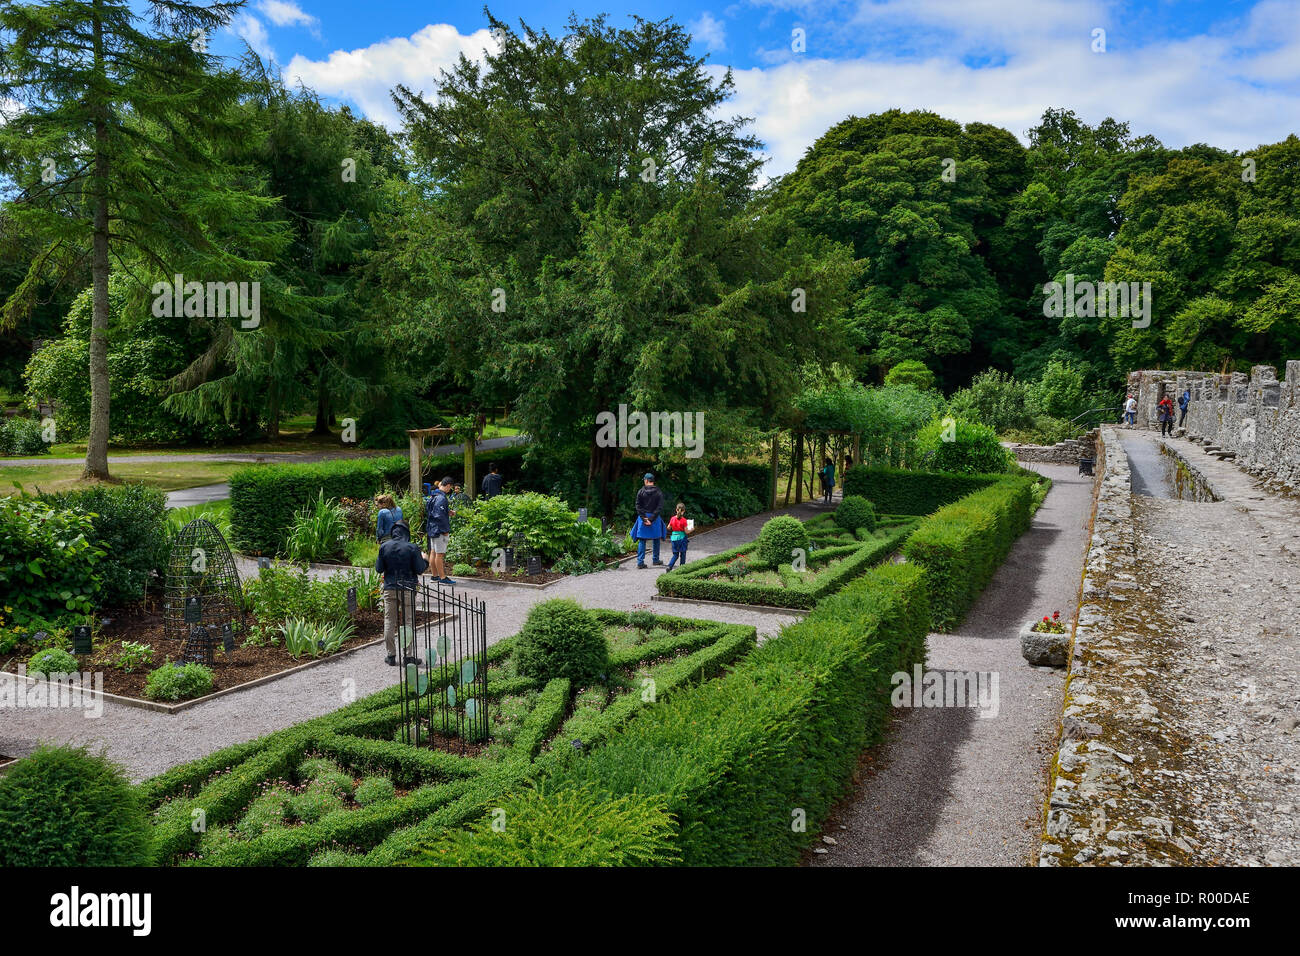 Poison Garden at Blarney Castle, near Cork in County Cork, Republic of Ireland - Stock Image